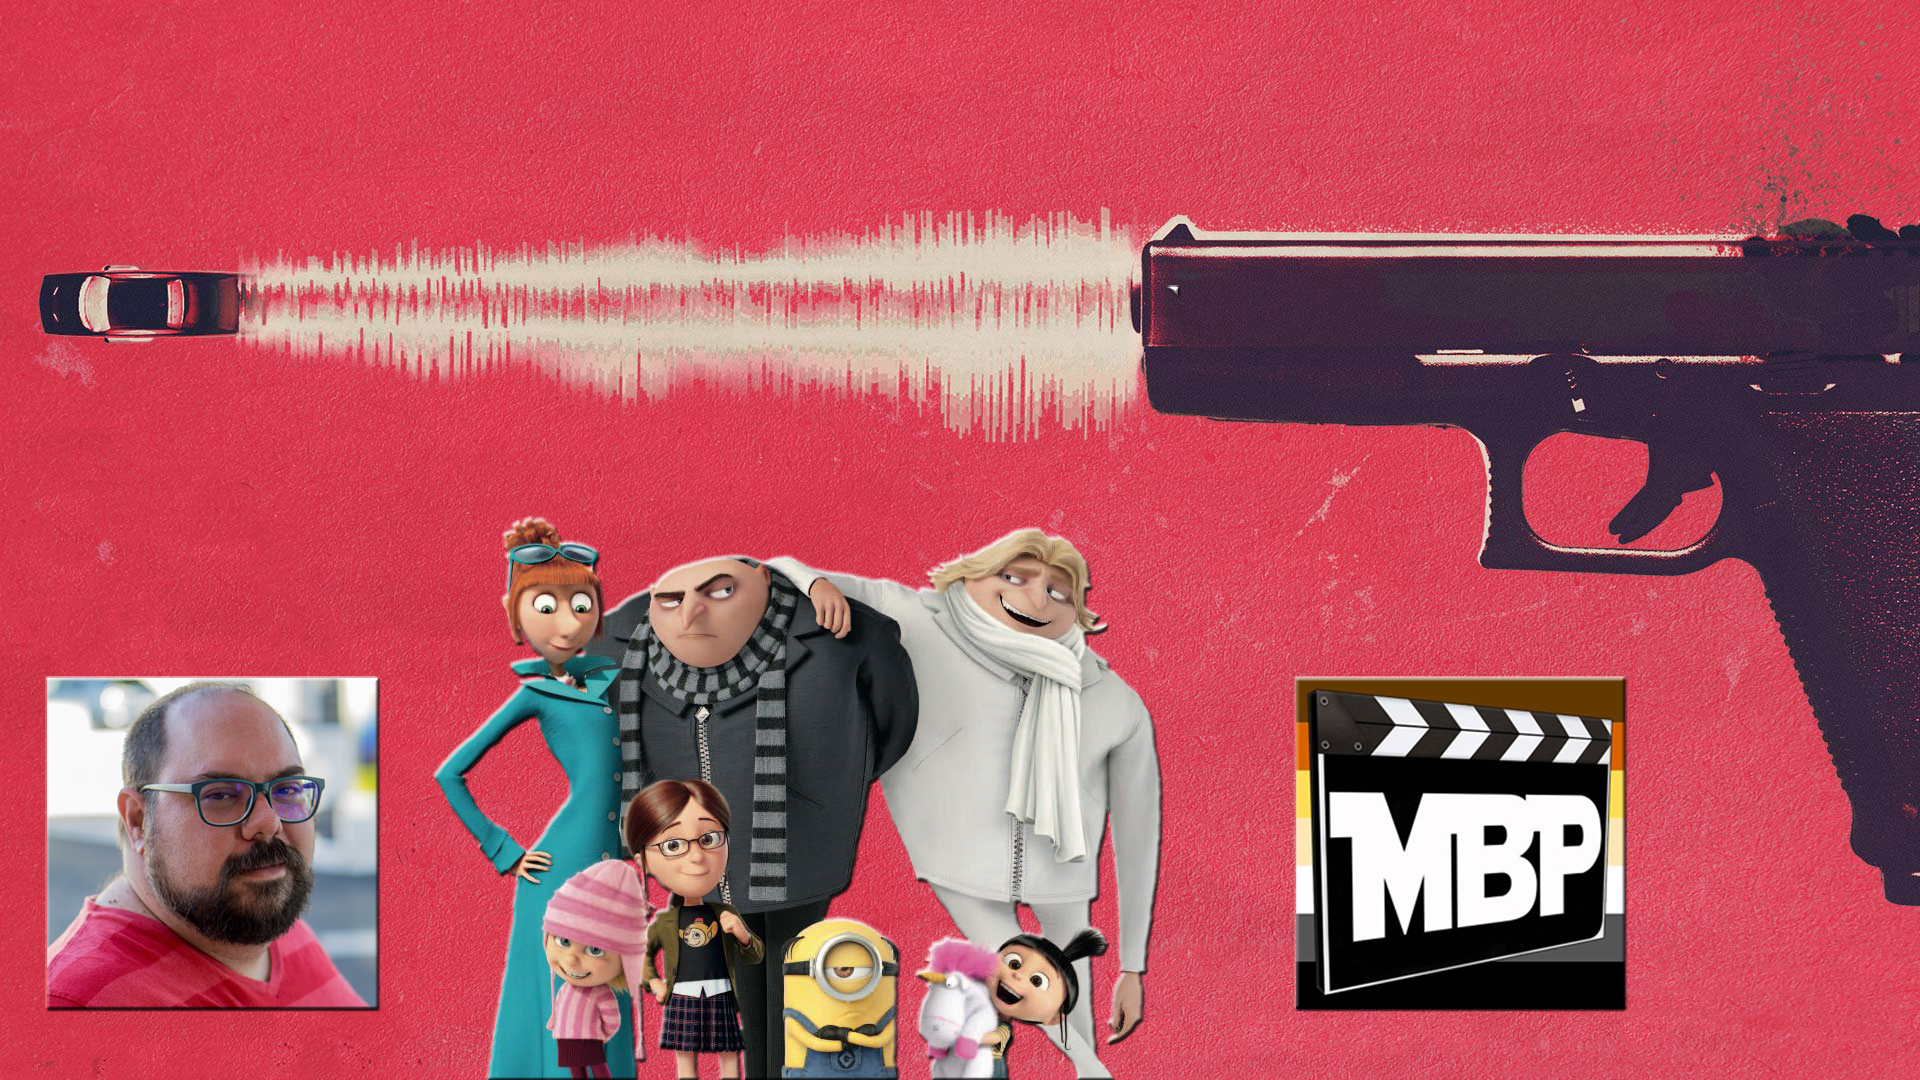 MBP e240 - 'Baby Driver' and 'Despicable Me 3' (7/7/17)    The sexy voice of the Movie Bears Podcast, Chris Lopez, returns to help us review Edgar Wright's 'Baby Driver' and Illumination animation film 'Despicable Me 3.' Click through to listen!